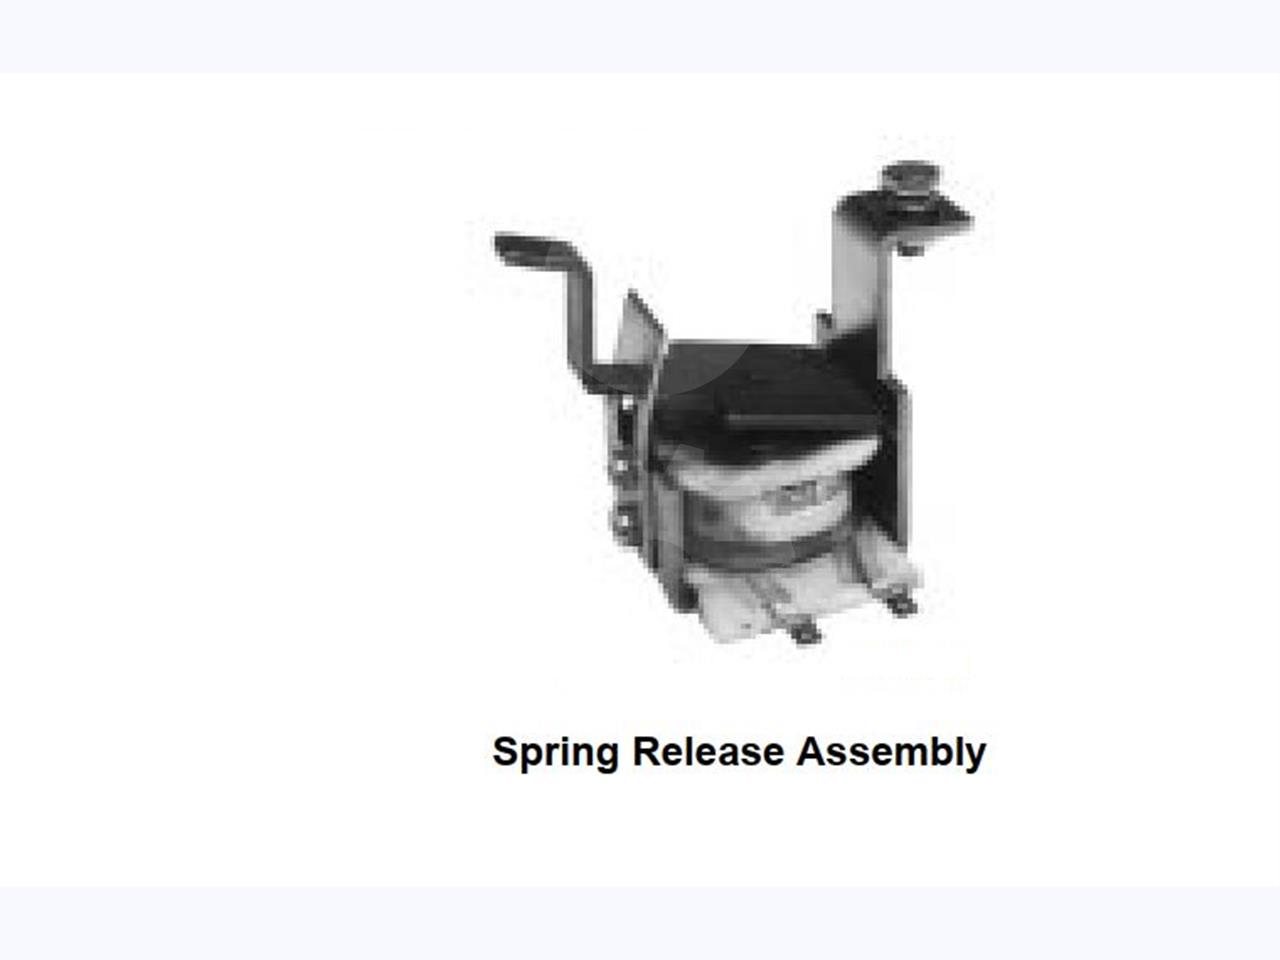 WH 120VAC SPRING RELEASE / CLOSE COIL ASSEMBLY